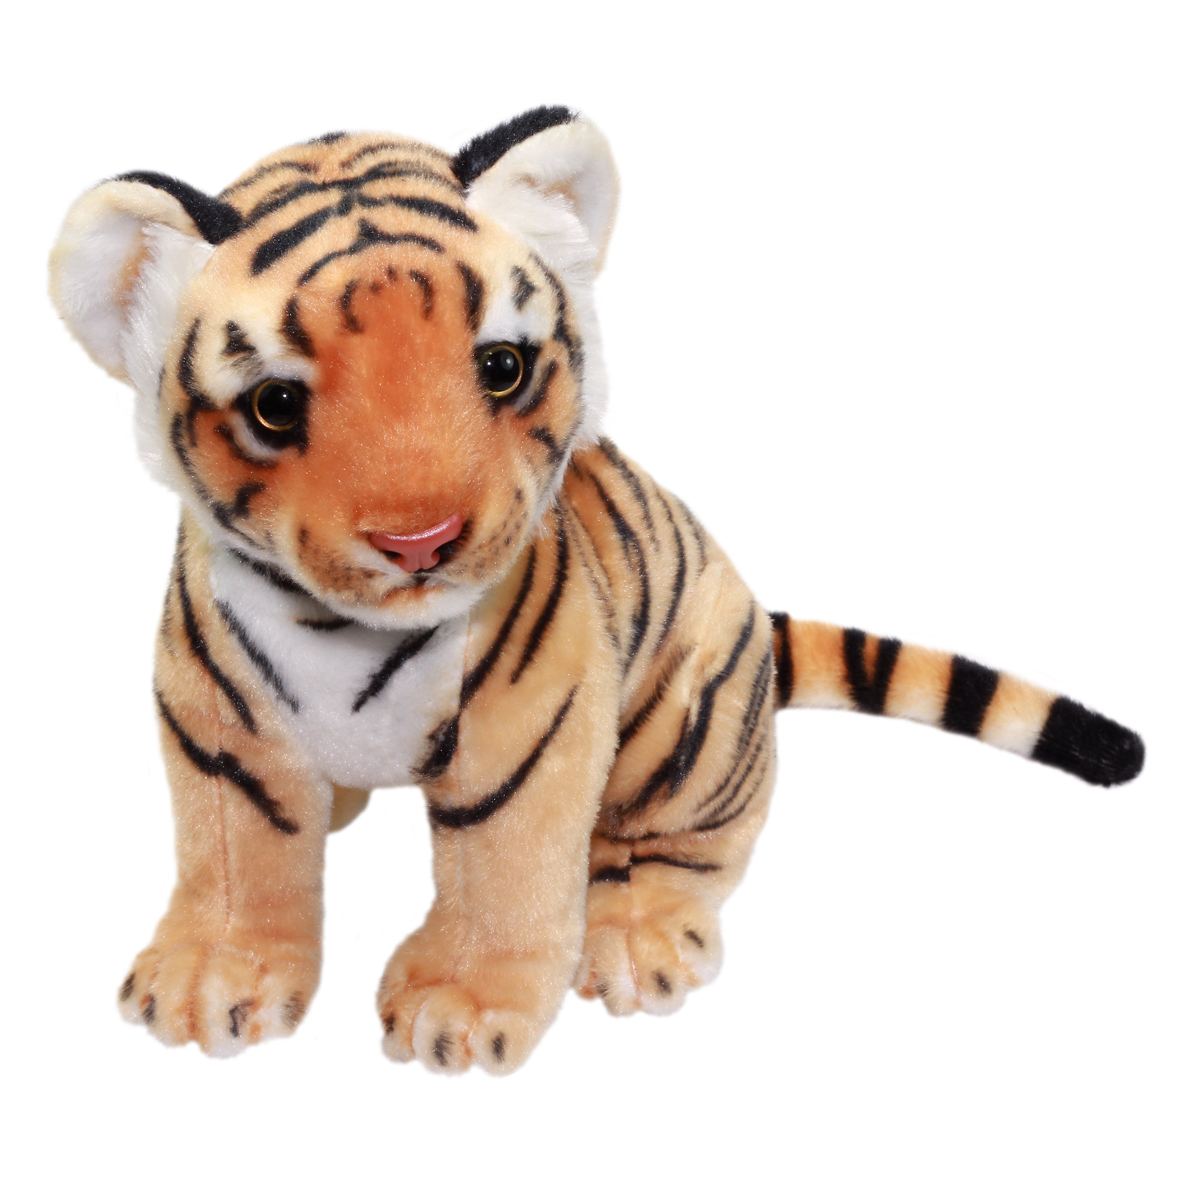 Real Animal Plush Collection Stuffed Animal Toy Bengal Tiger 10 Inches